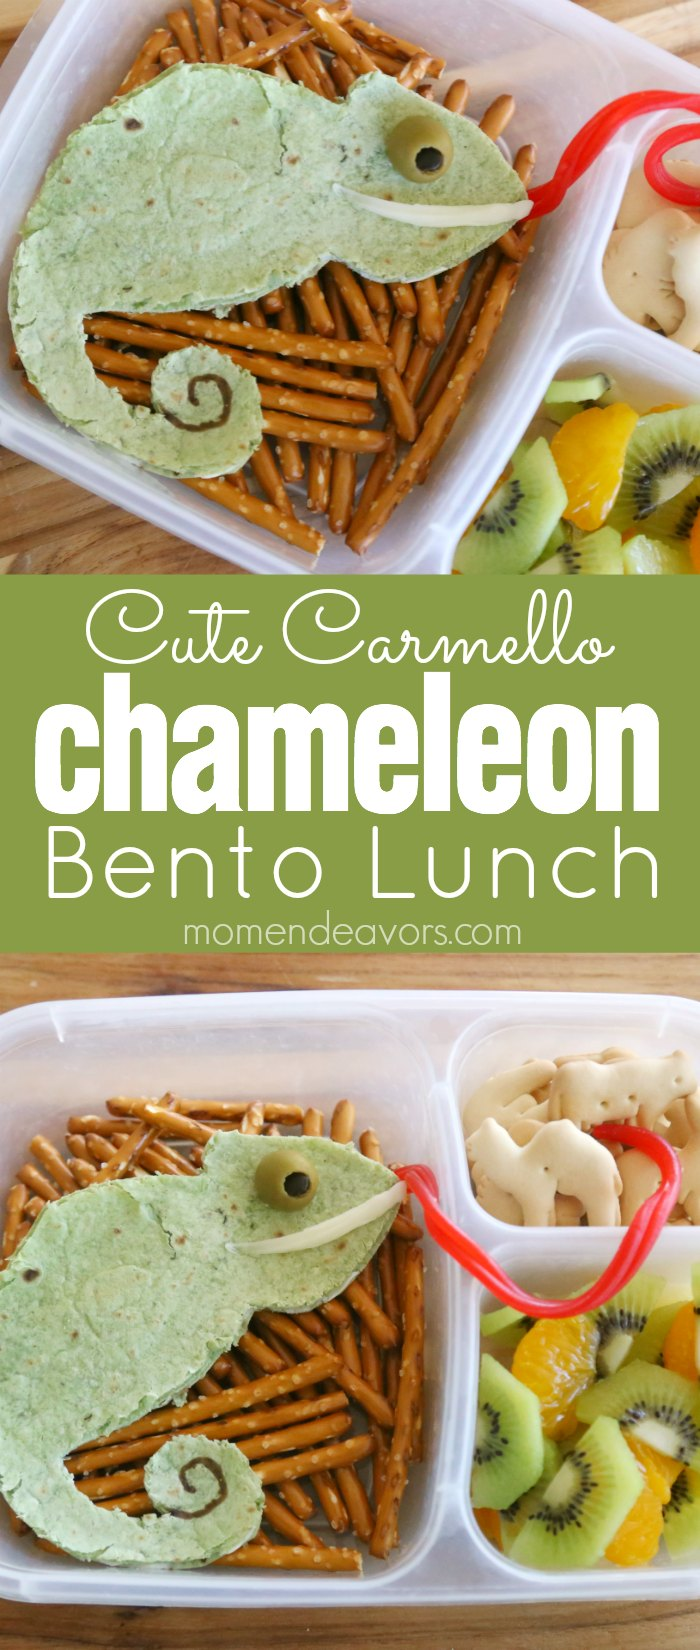 Chameleon Bento Lunch